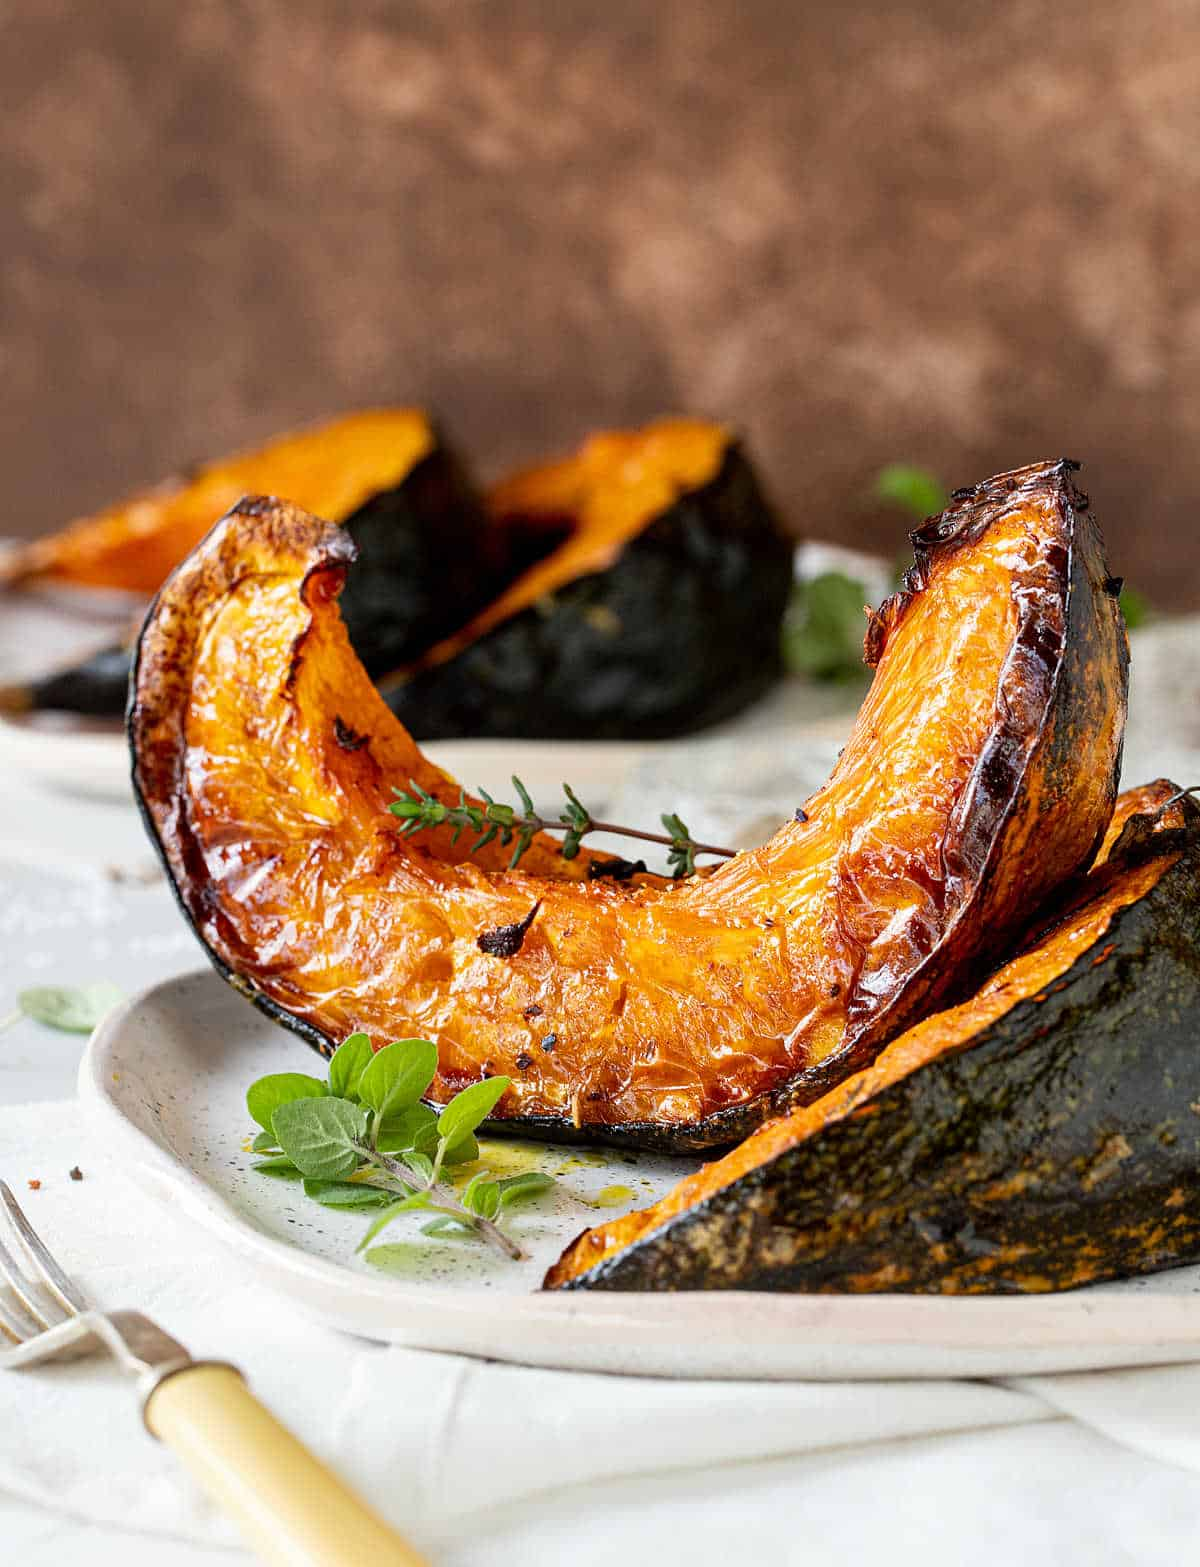 Brown background, white surface, plates containing blistered pumpkin wedges, fresh herbs